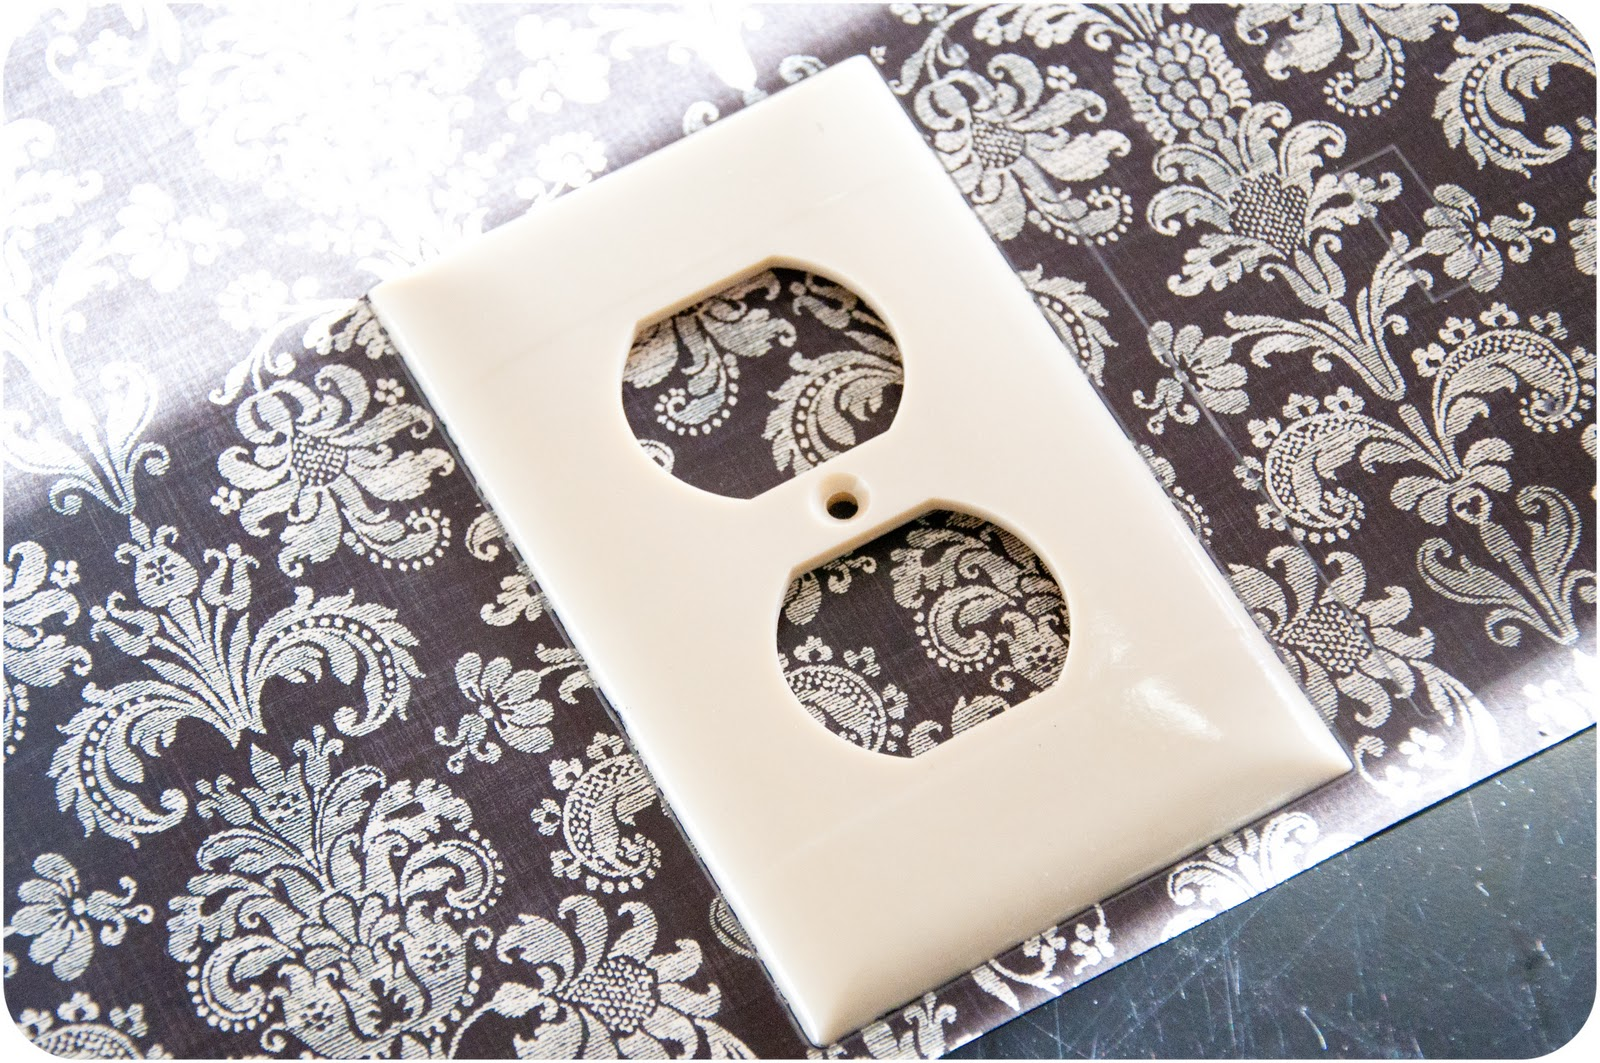 Arts and crafts switch plate covers - Covered Light Switch Outlet Plates